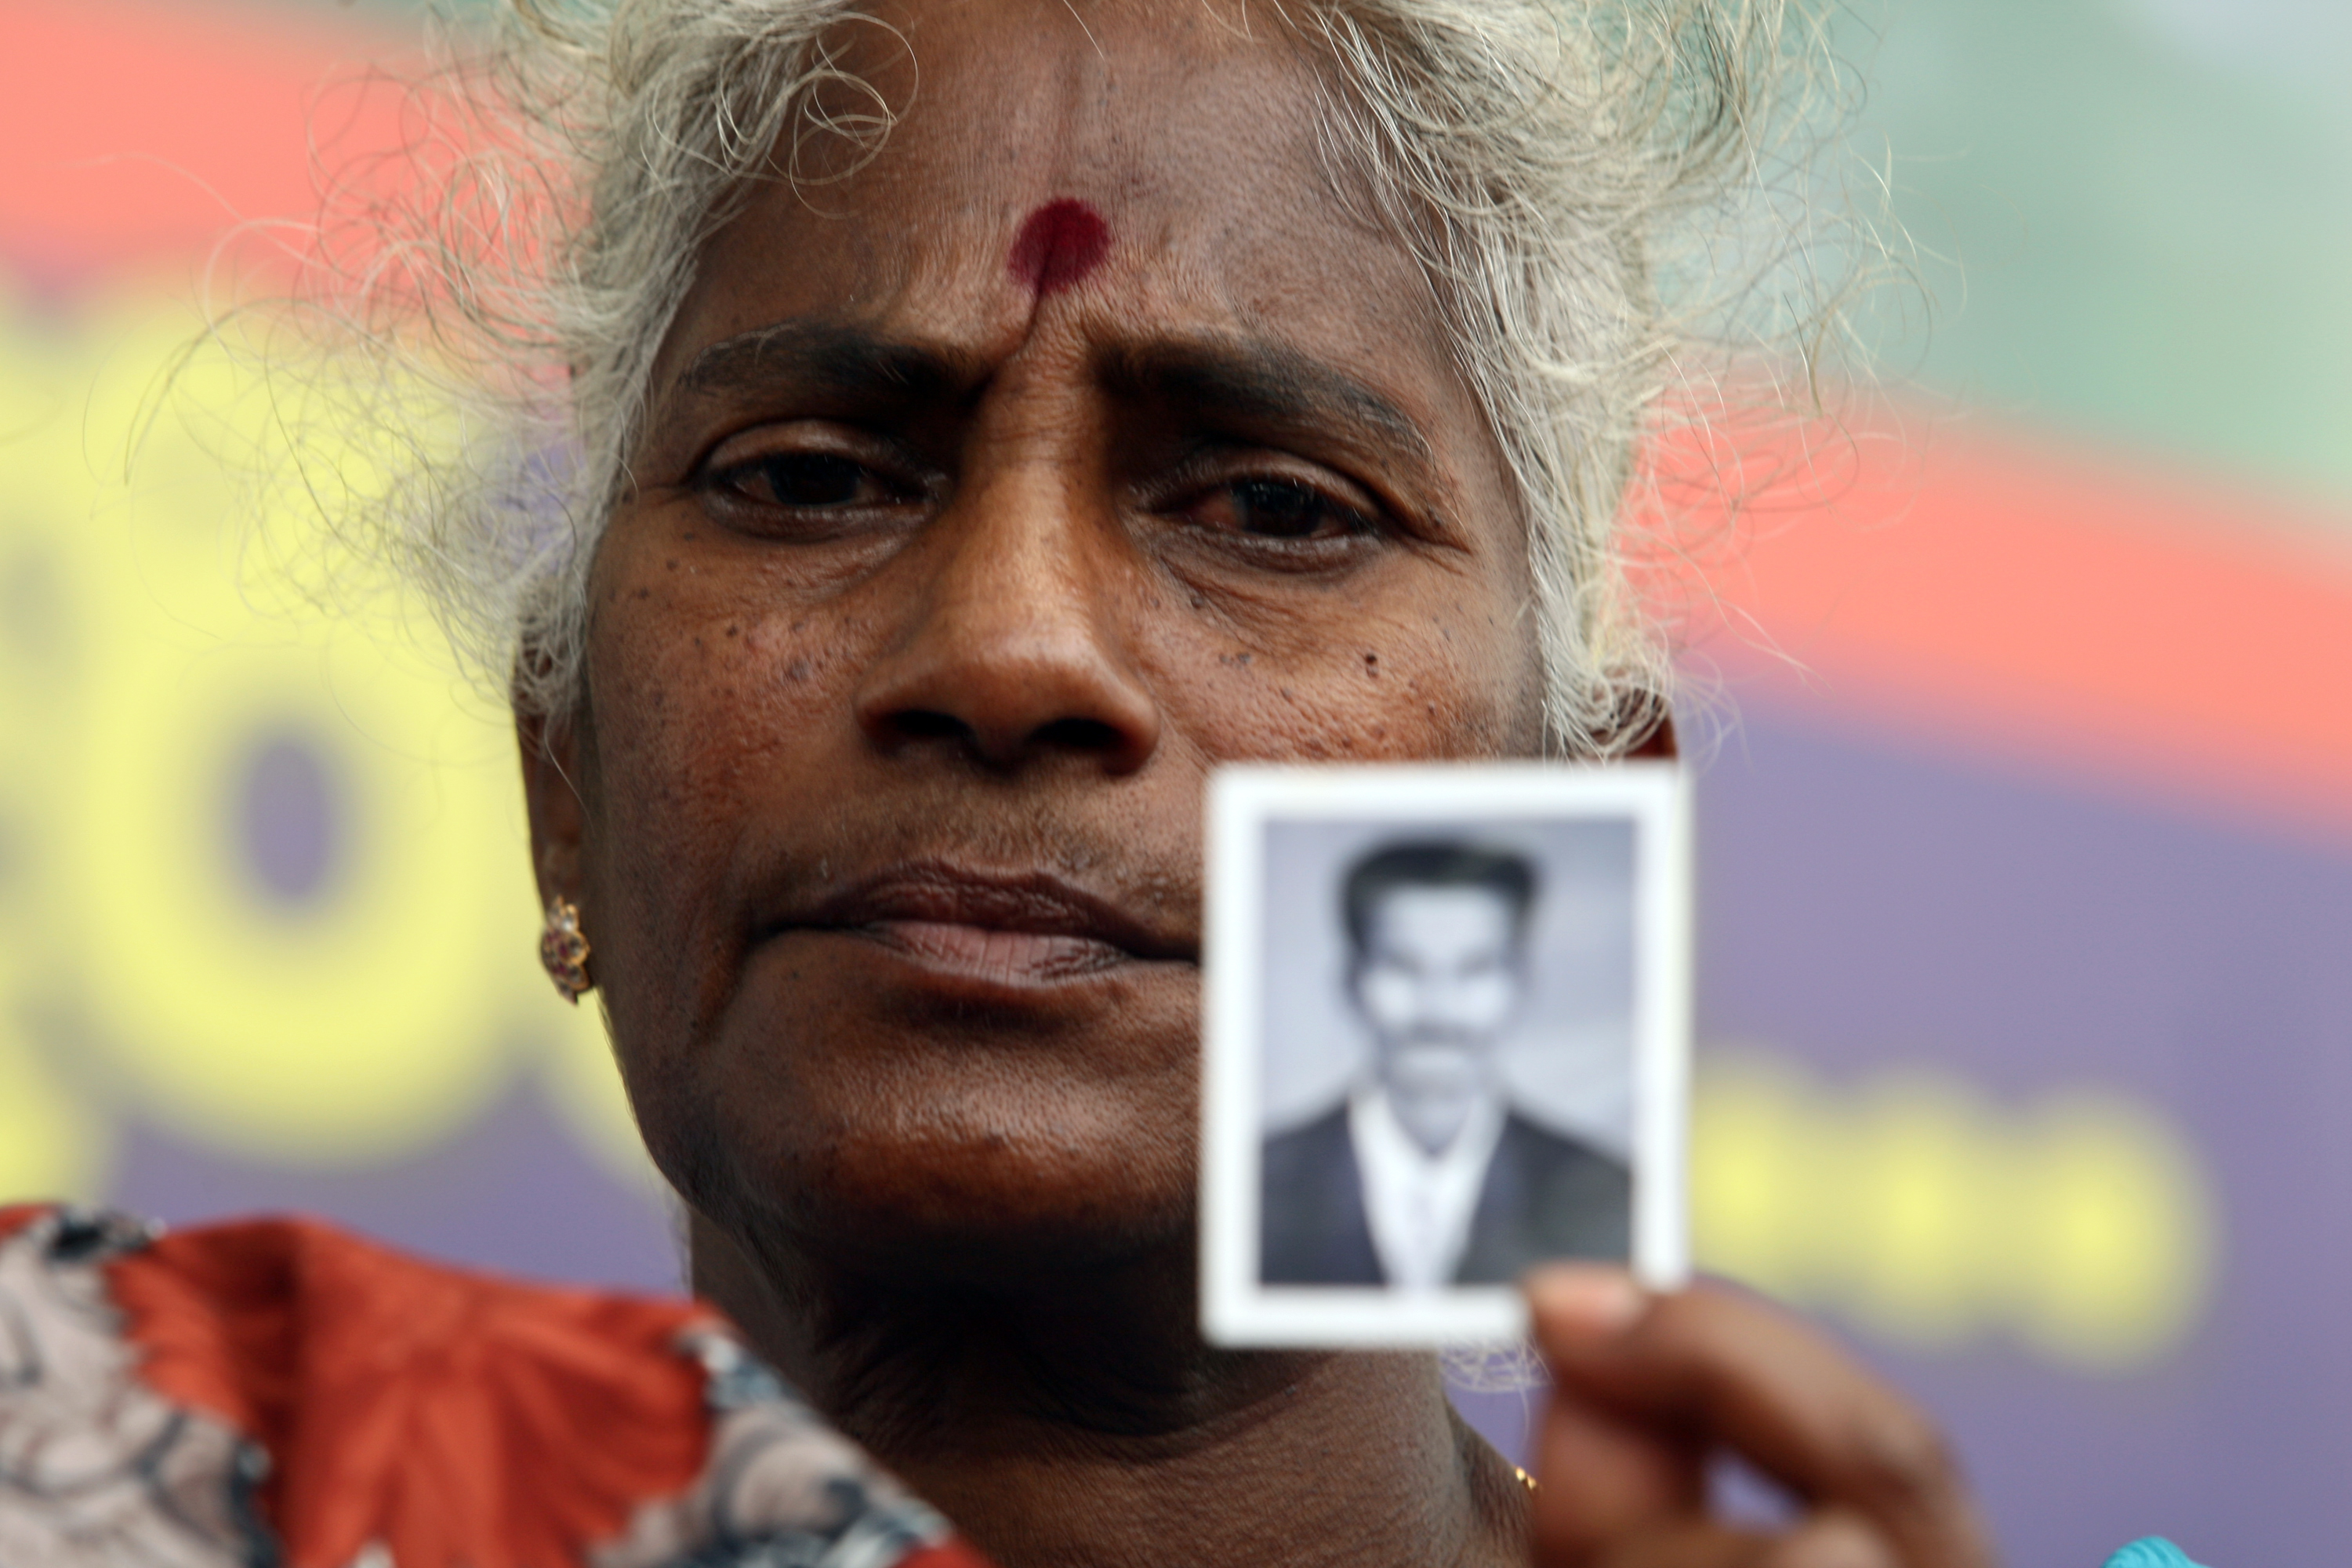 Senevirathnam Wasanayagi, 63, mother of a detained Tamil Tiger rebel suspect holds up a photo of her son during a protest outside the main prison on May 29, 2012, in Colombo, Sri Lanka. Relatives and rights activists are demanding that the Tamil Tiger rebel suspects who have been held without trial  are released or brought to court